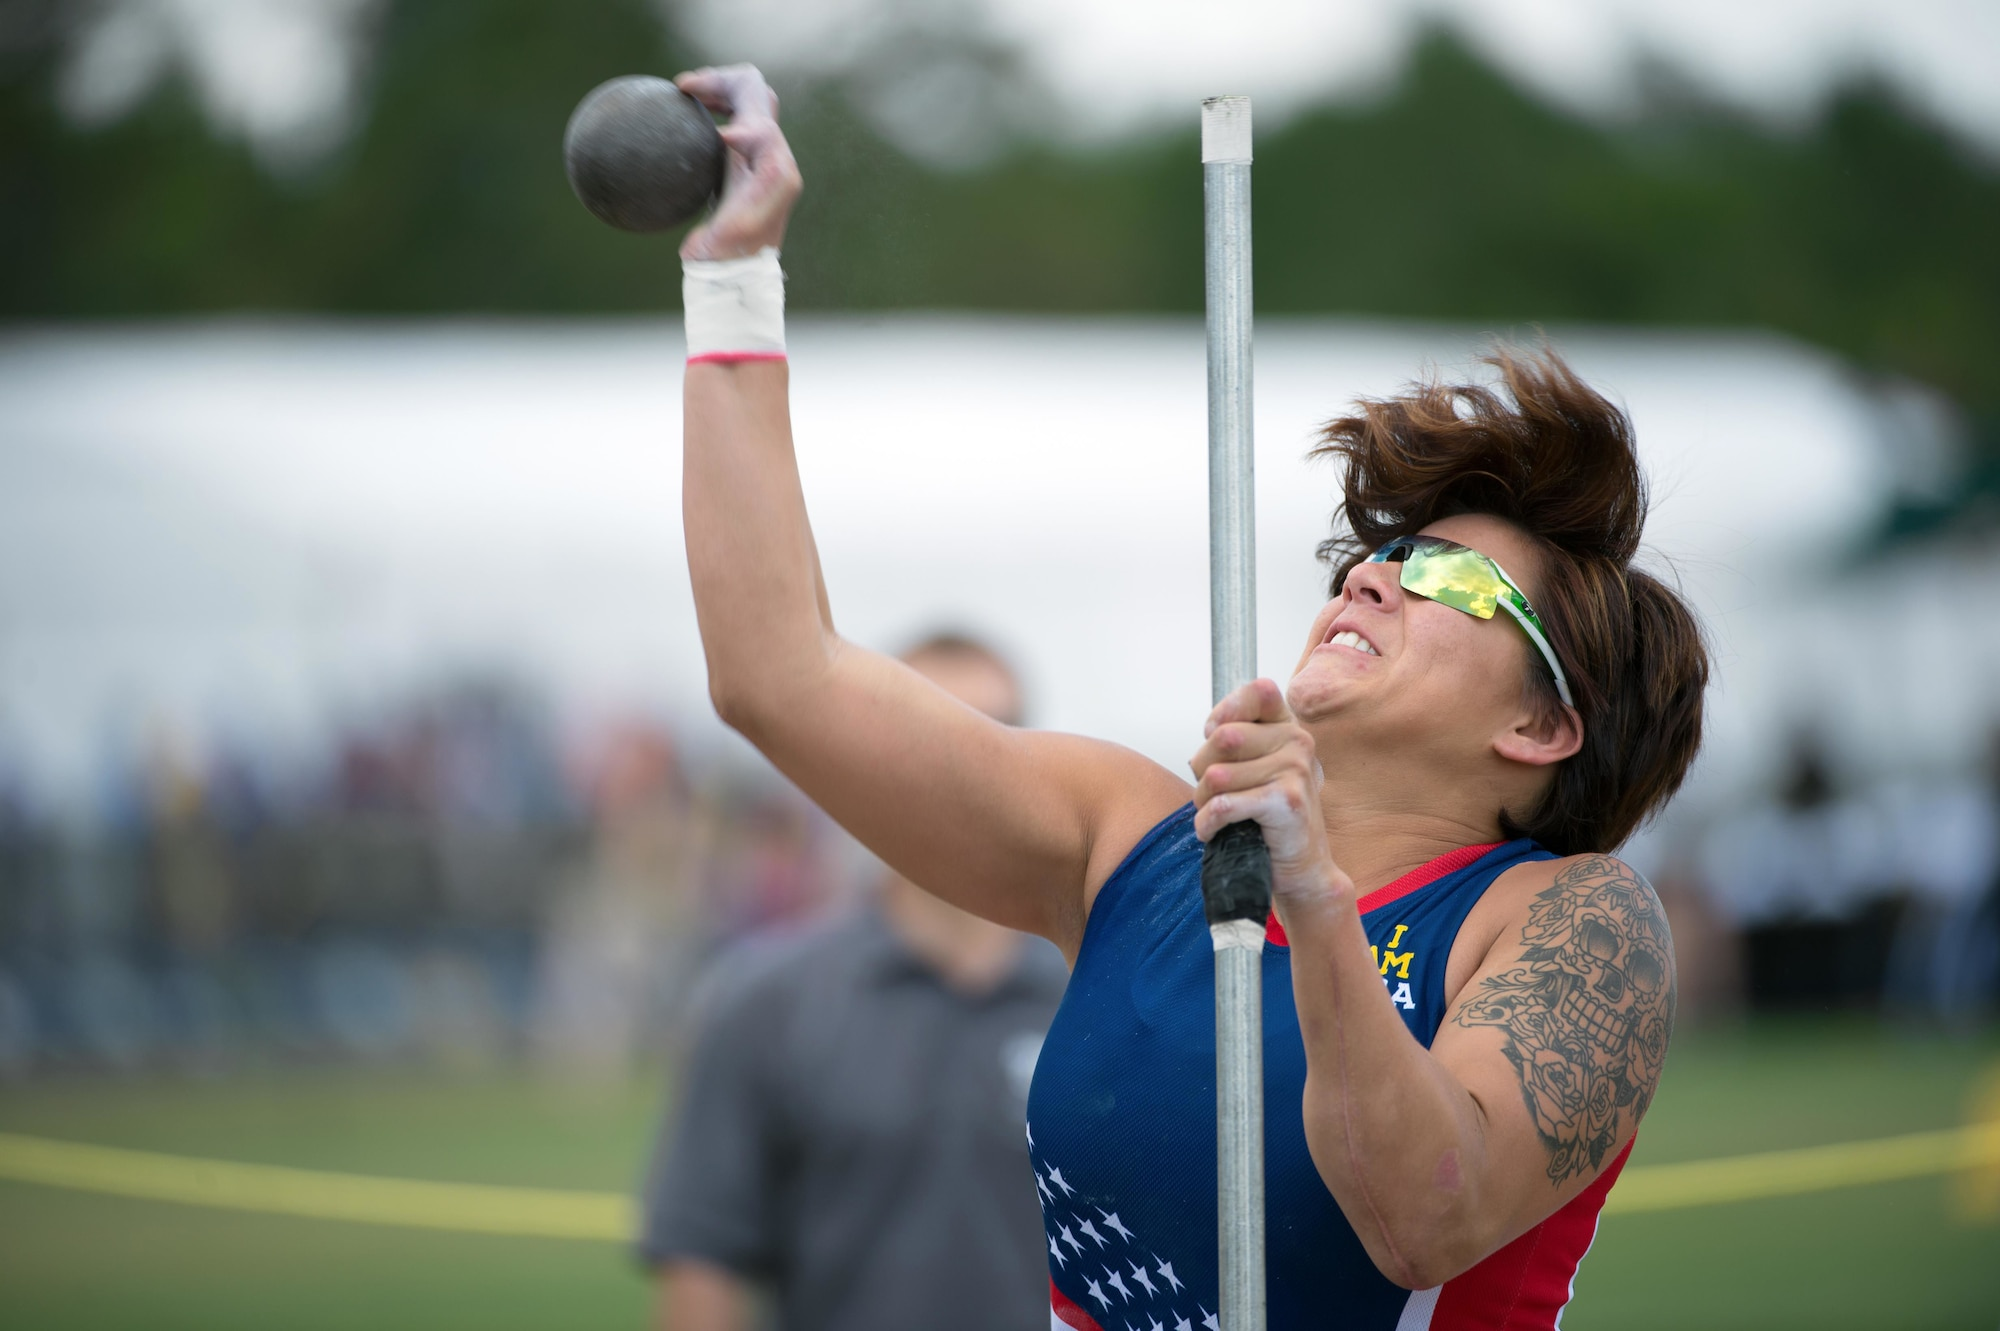 Staff Sgt. Sebastiana Lopez Arellano, a member of the U.S. team, competes in the shotput event during the 2016 Invictus Games in Orlando, Fla., May 10, 2016. Lopez lost her right leg and suffered several other injuries in a motorcycle crash in 2015. She now uses sports and fitness as part of her physical and occupational therapy regimen. (Defense Department photo/EJ Hersom)